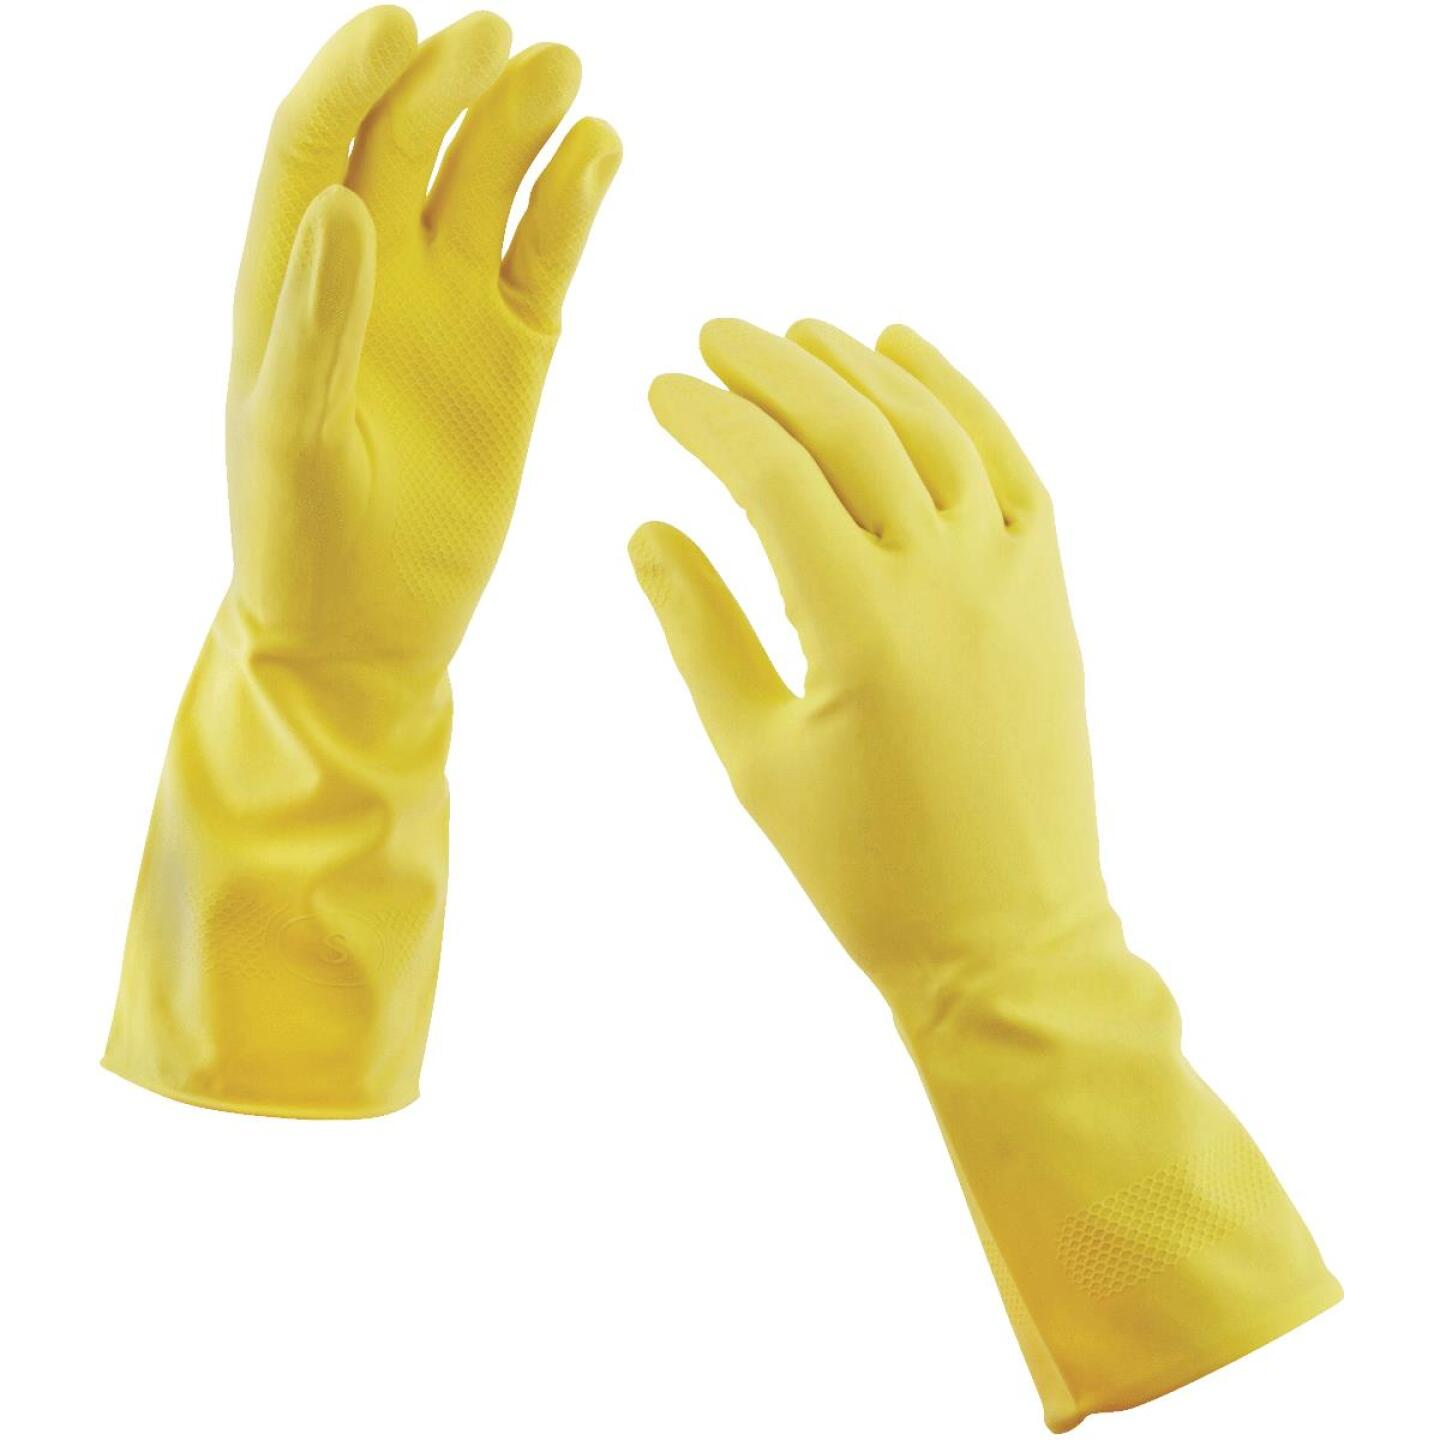 Soft Scrub Small Latex Rubber Glove (2-Pack) Image 2